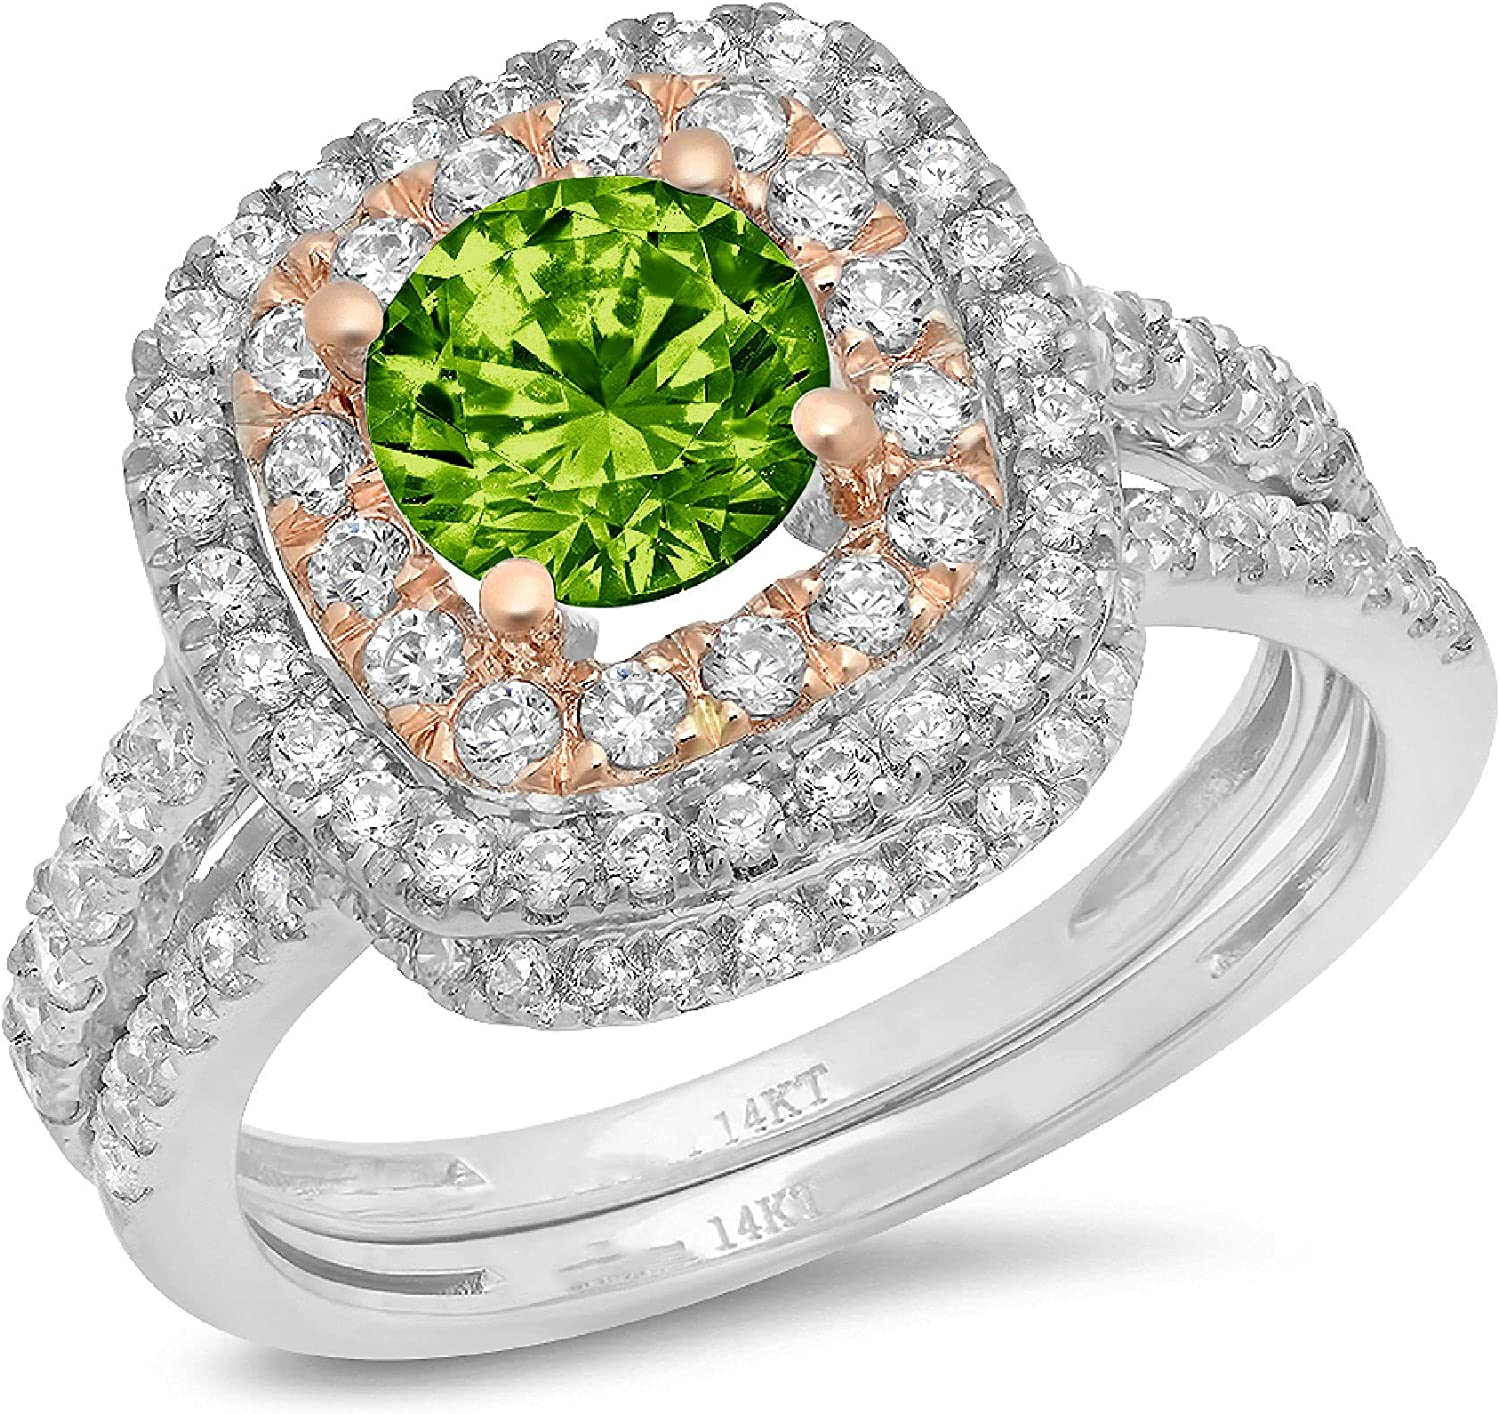 Clara Pucci 2.0ct Round Cut Halo Pave Solitaire Halo Accent Genuine Flawless Natural Green Peridot Engagement Promise Statement Anniversary Bridal Wedding Ring Band set Curved 18K White Rose Gold